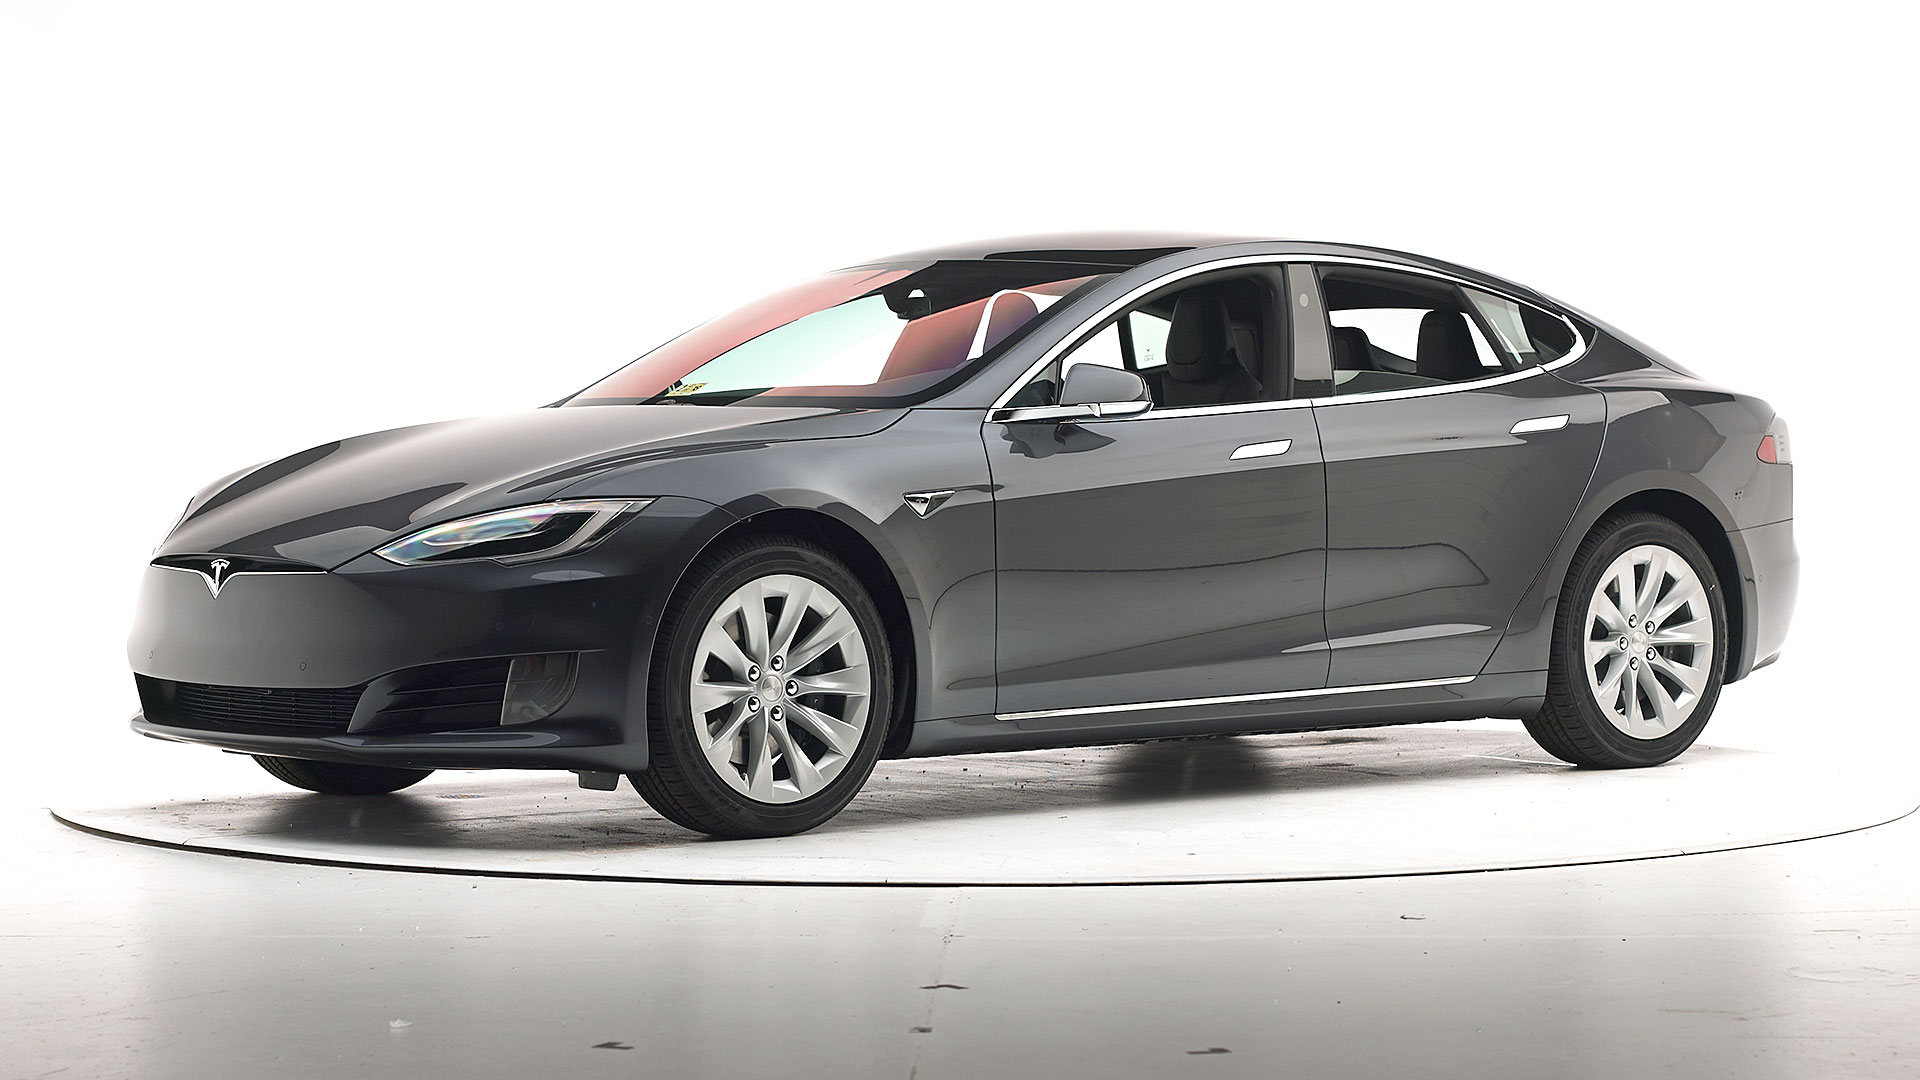 2017 Tesla Model S 4-door hatchback